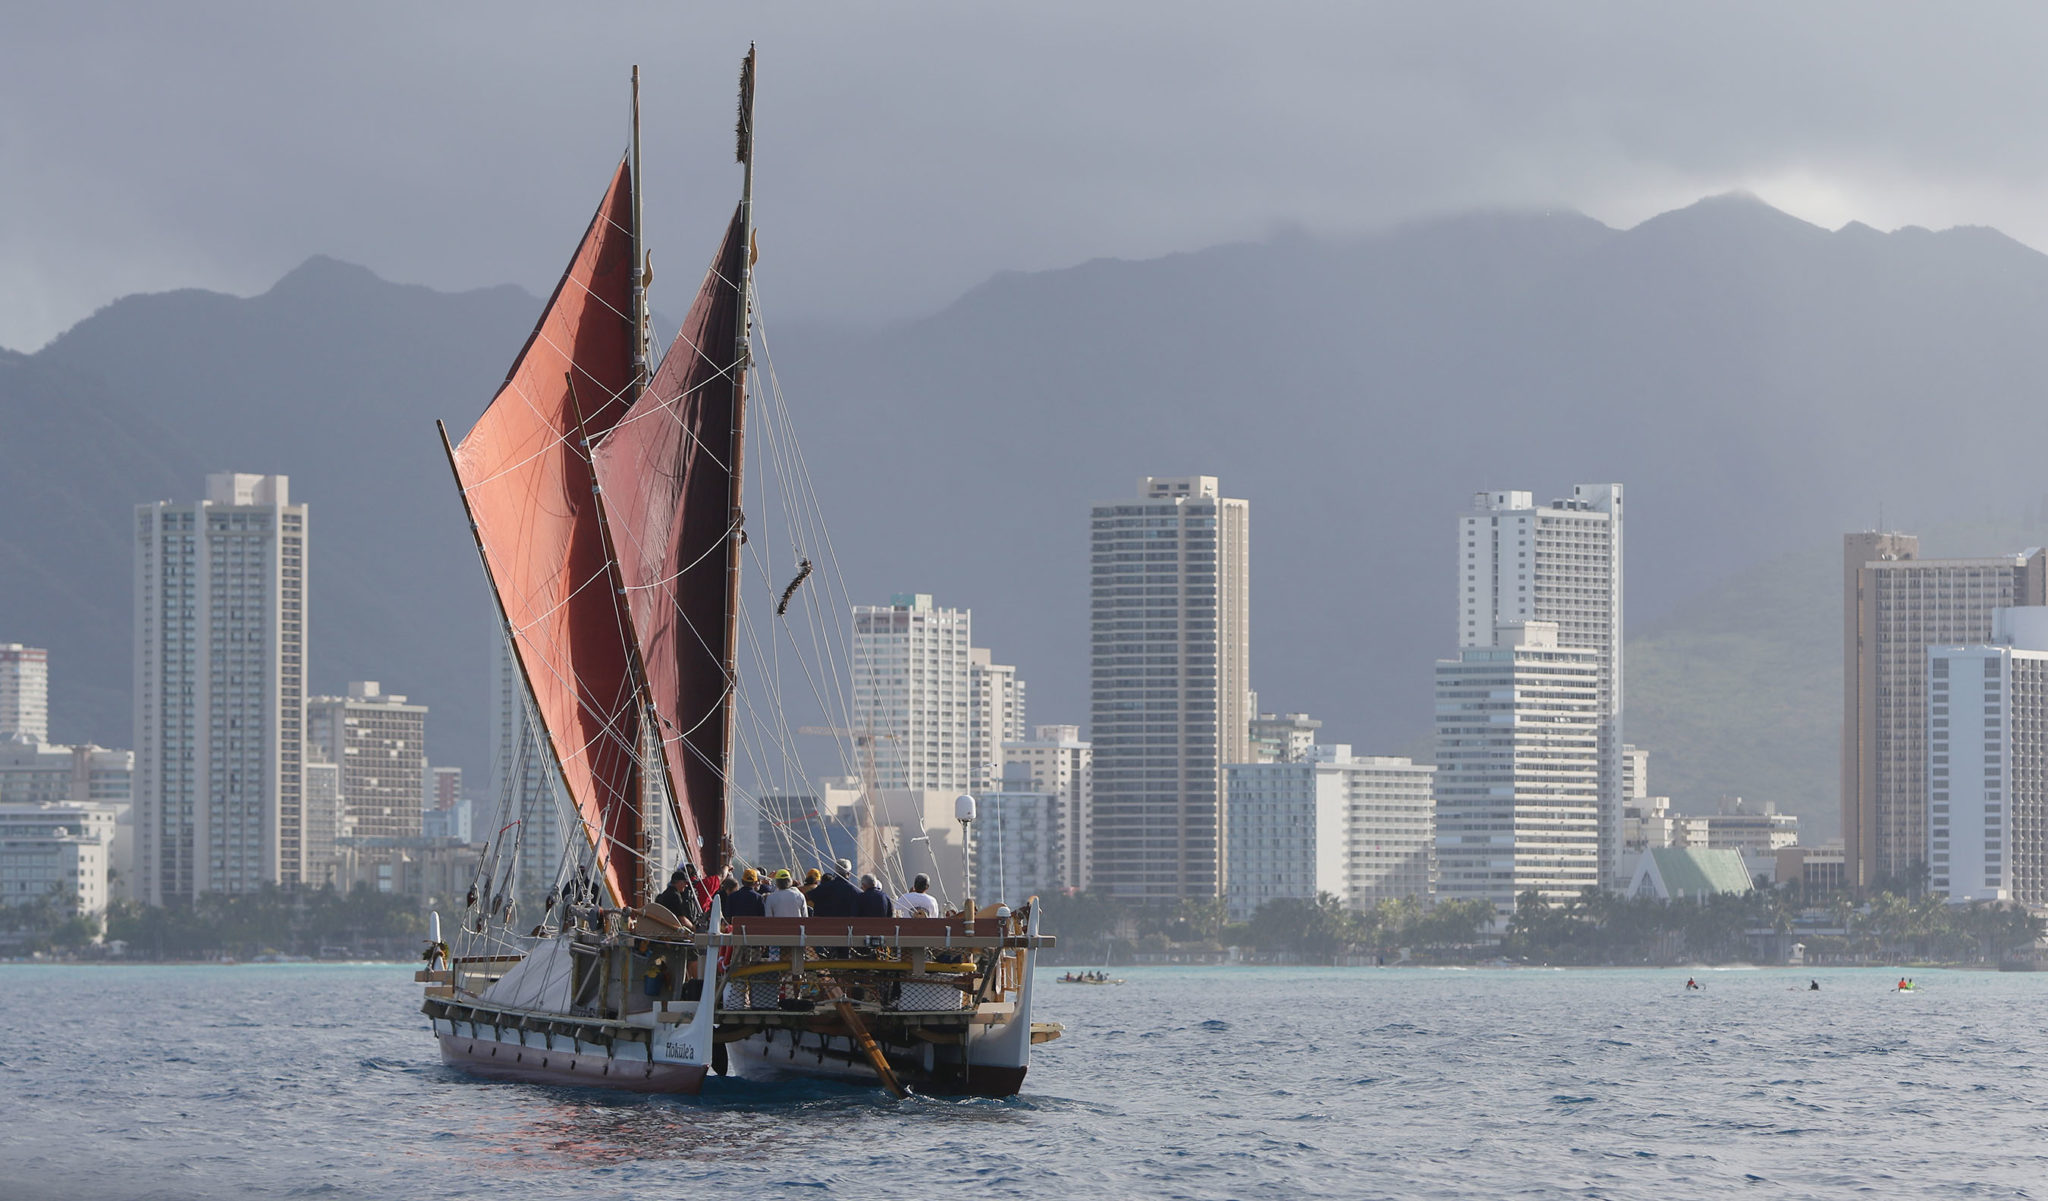 <p>The HokulHokulea sails offshore Waikiki on her way to Magic Island after a 3 year around the world voyage.ea crew opens her sails to make the final push toward Magic Island. Cory Lum/Civil Beat</p>